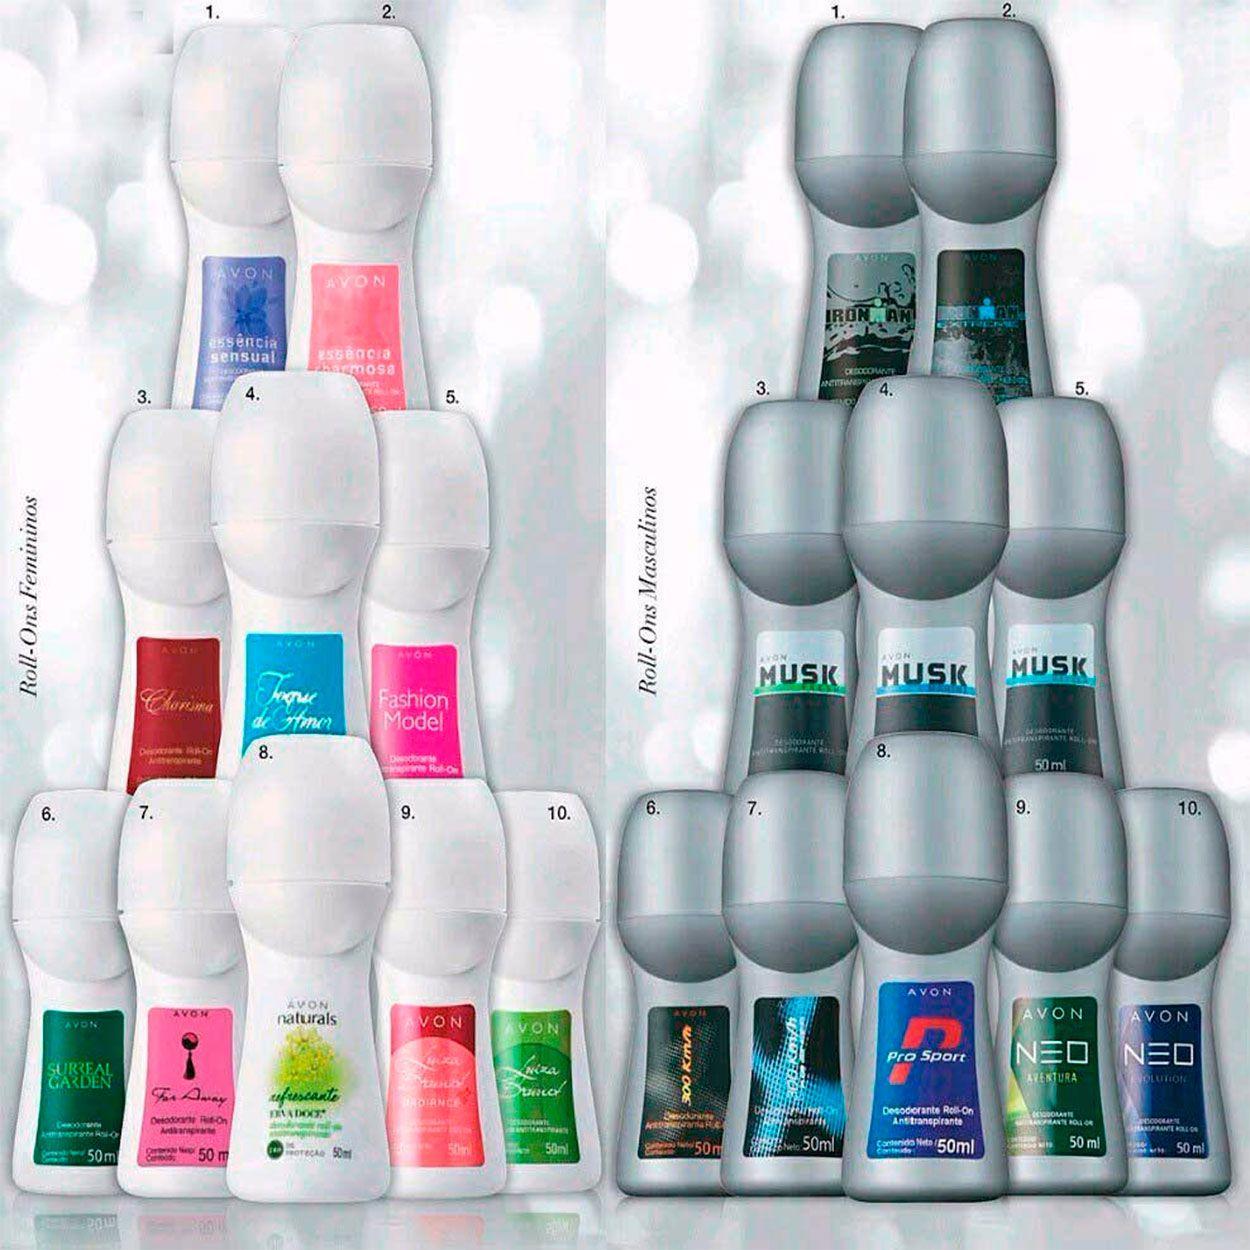 Desodorante Roll-on Avon 50ml 10 unidades